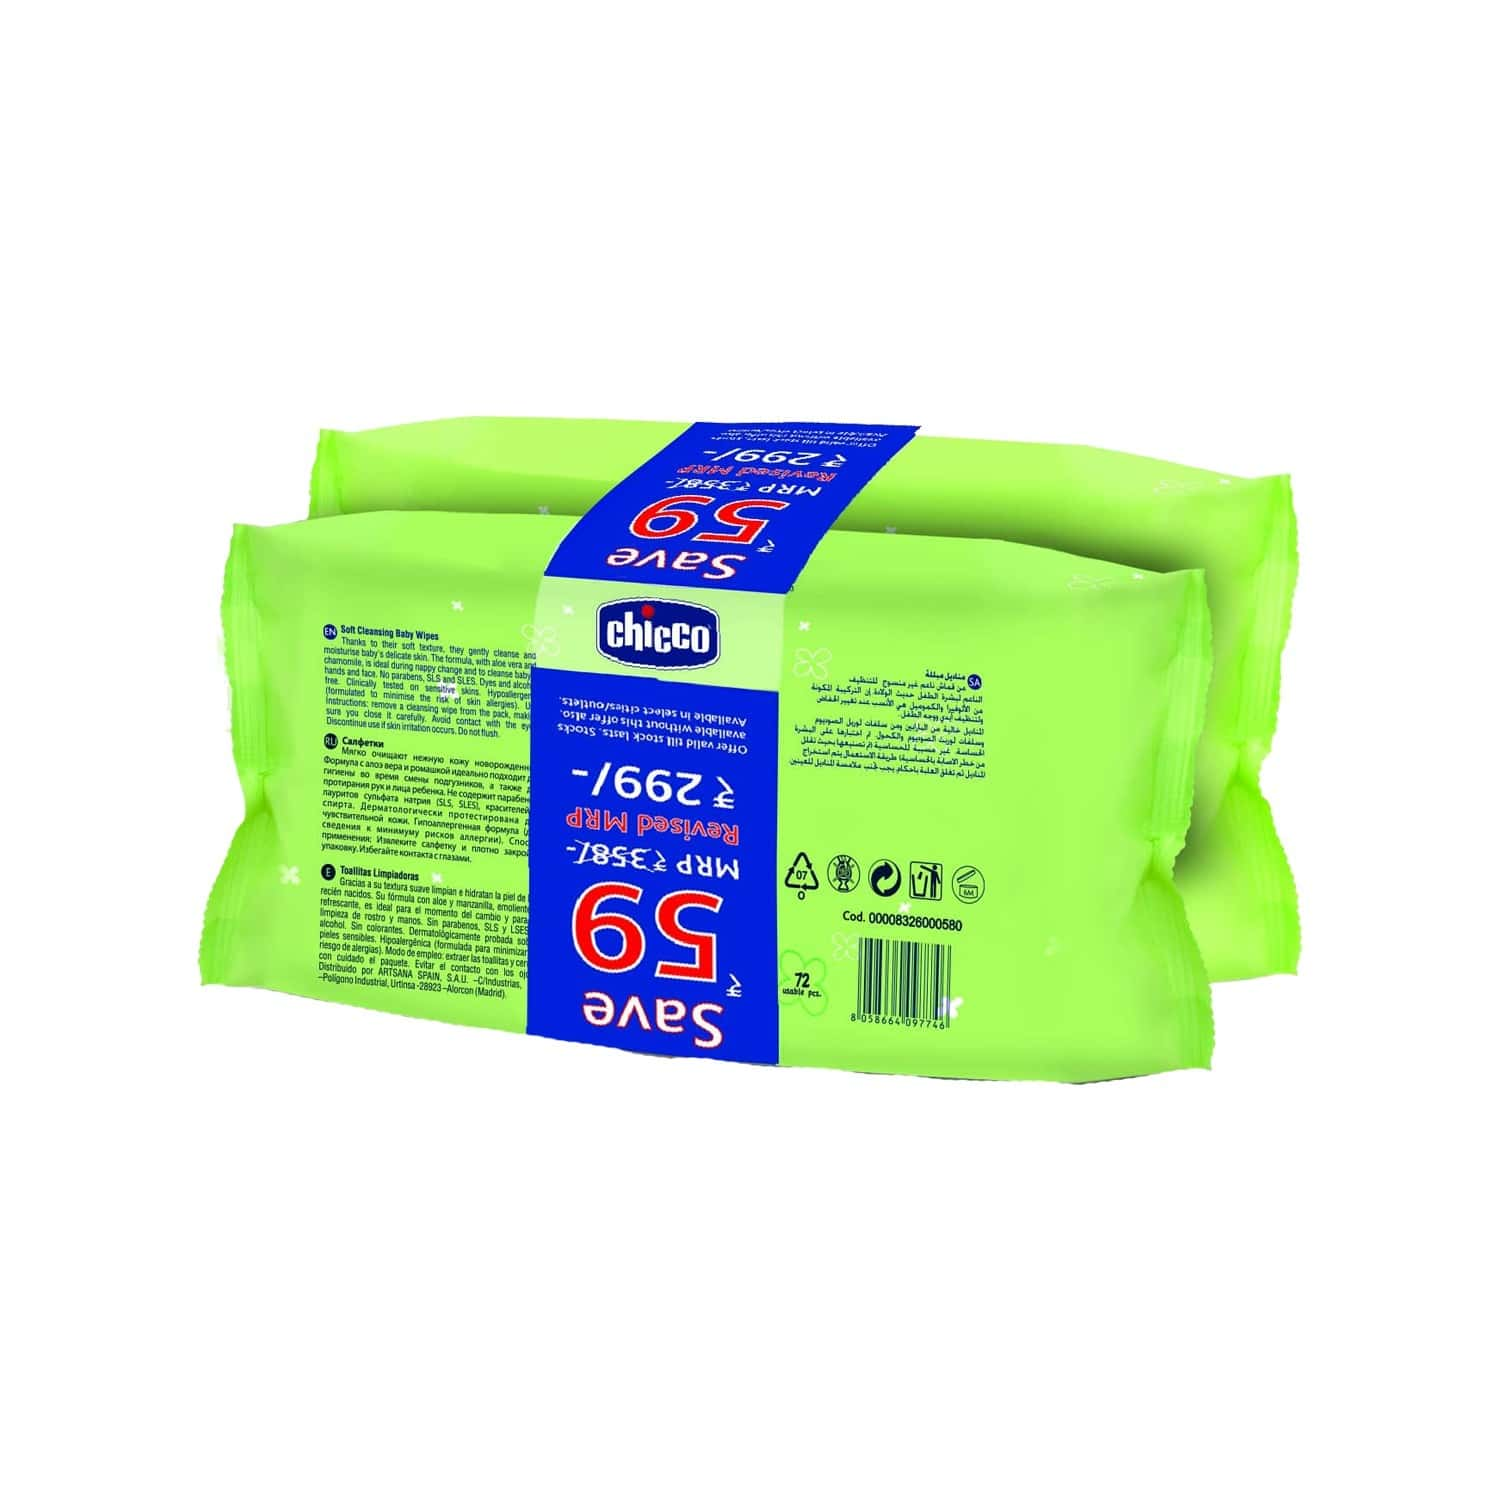 Chicco Baby Bipack - 72 Wipes